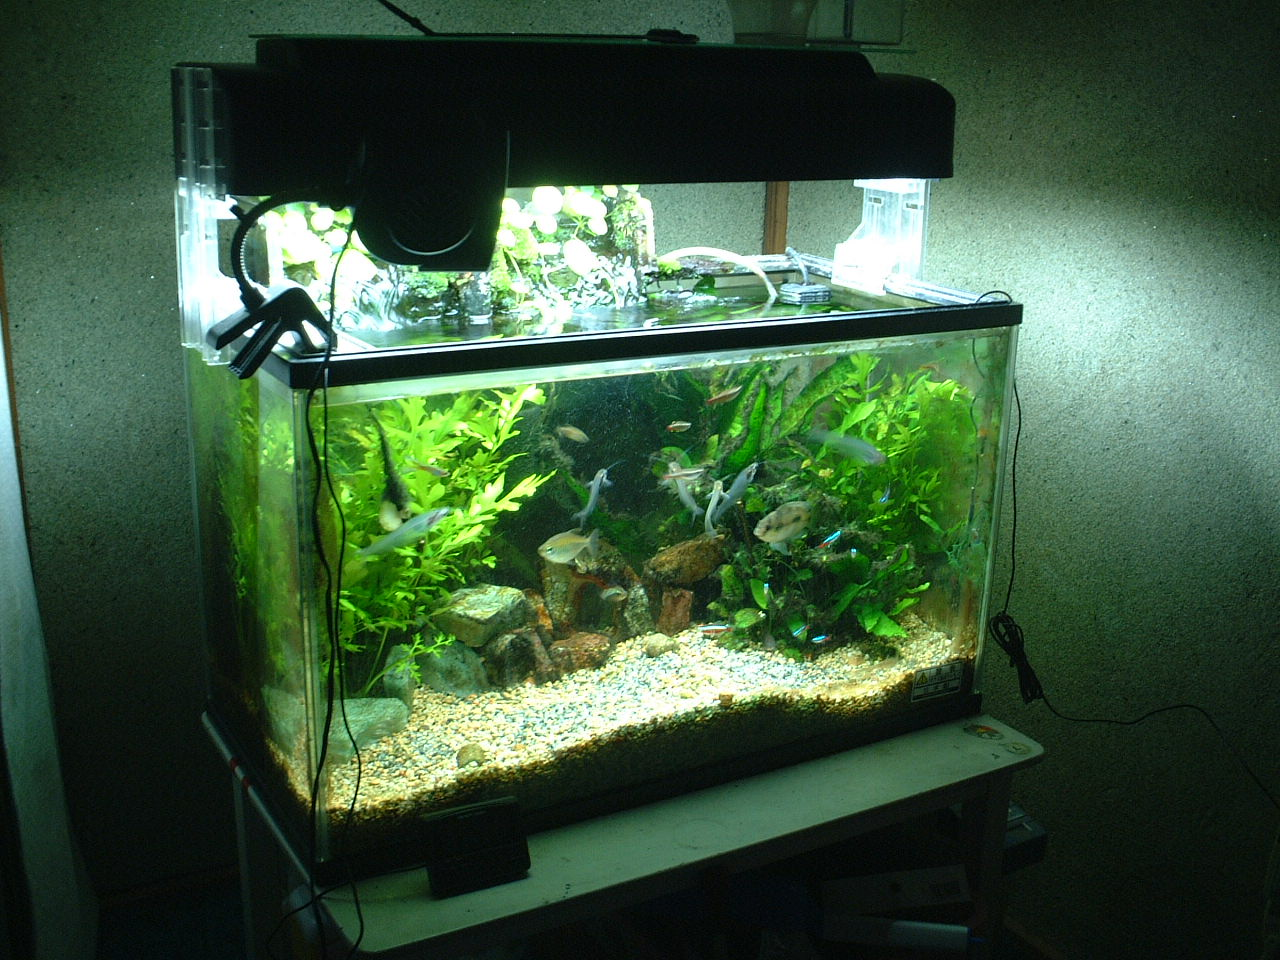 How To Clean An Aquarium U2013 Everything You Need To Know To Keep Your Aquarium  Clean